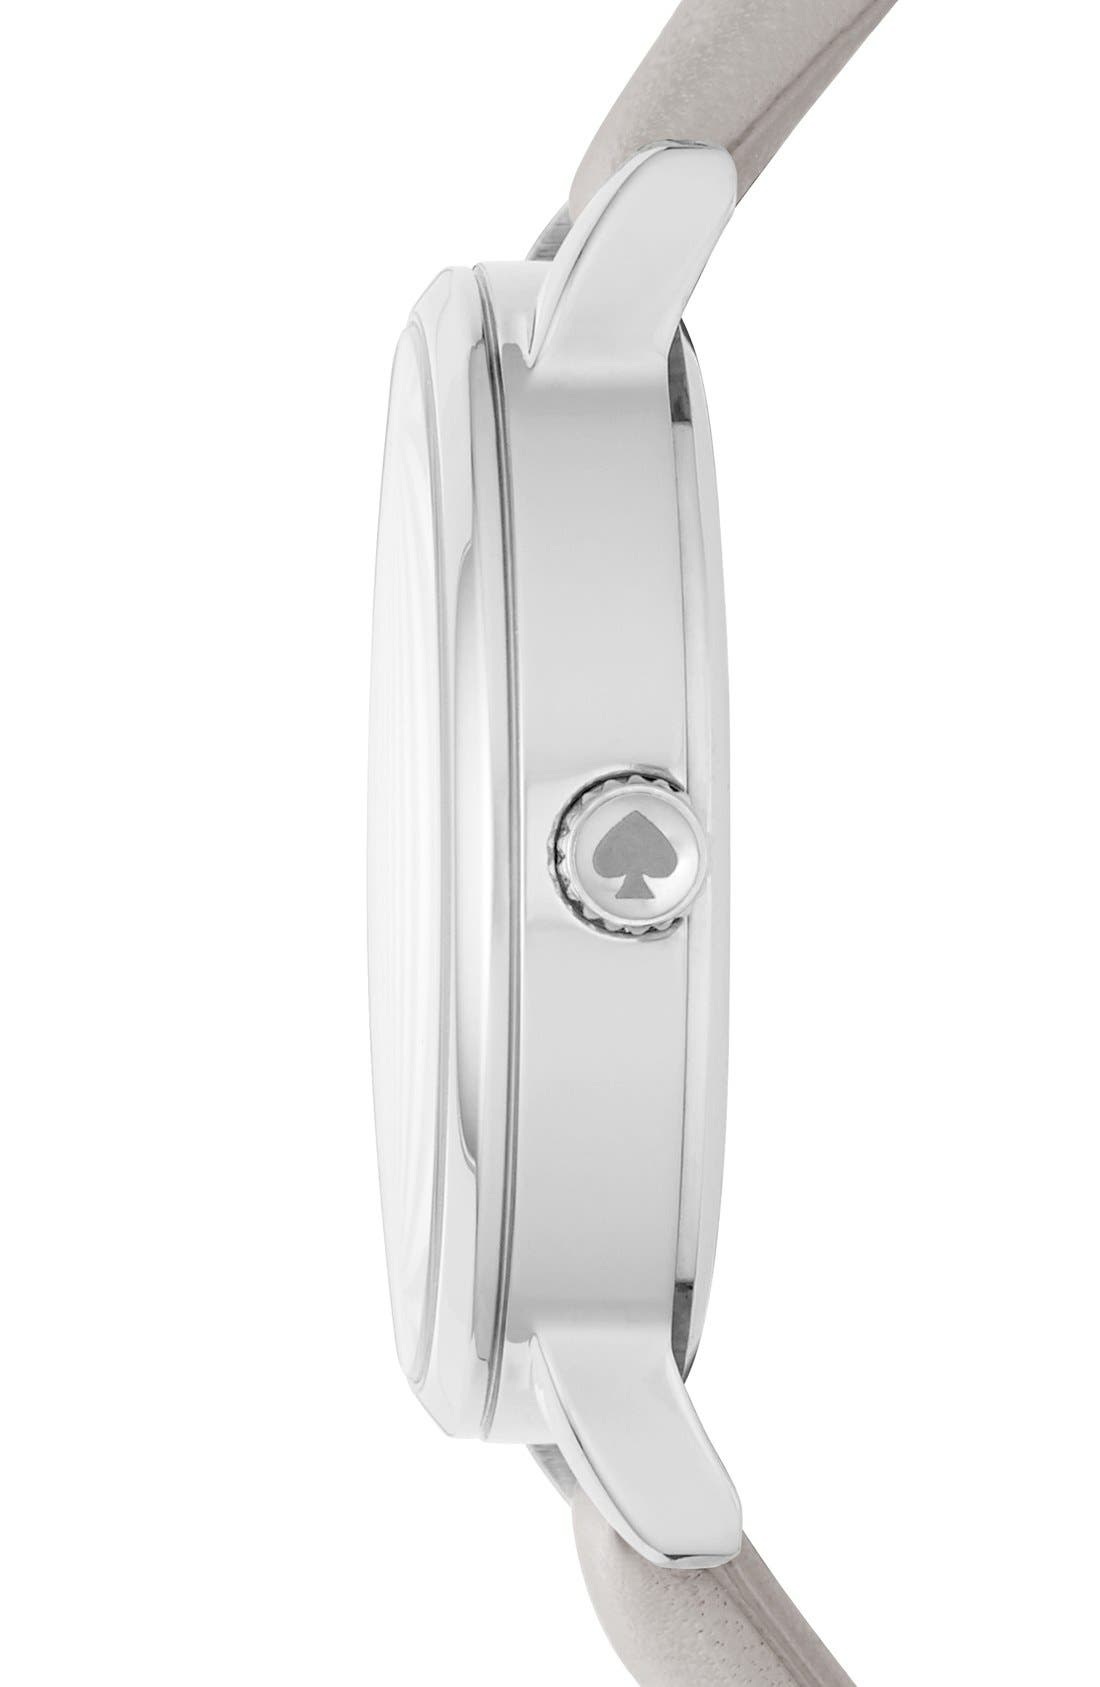 KATE SPADE NEW YORK, 'metro' round leather strap watch, 34mm, Alternate thumbnail 2, color, GREY/ MOTHER OF PEARL